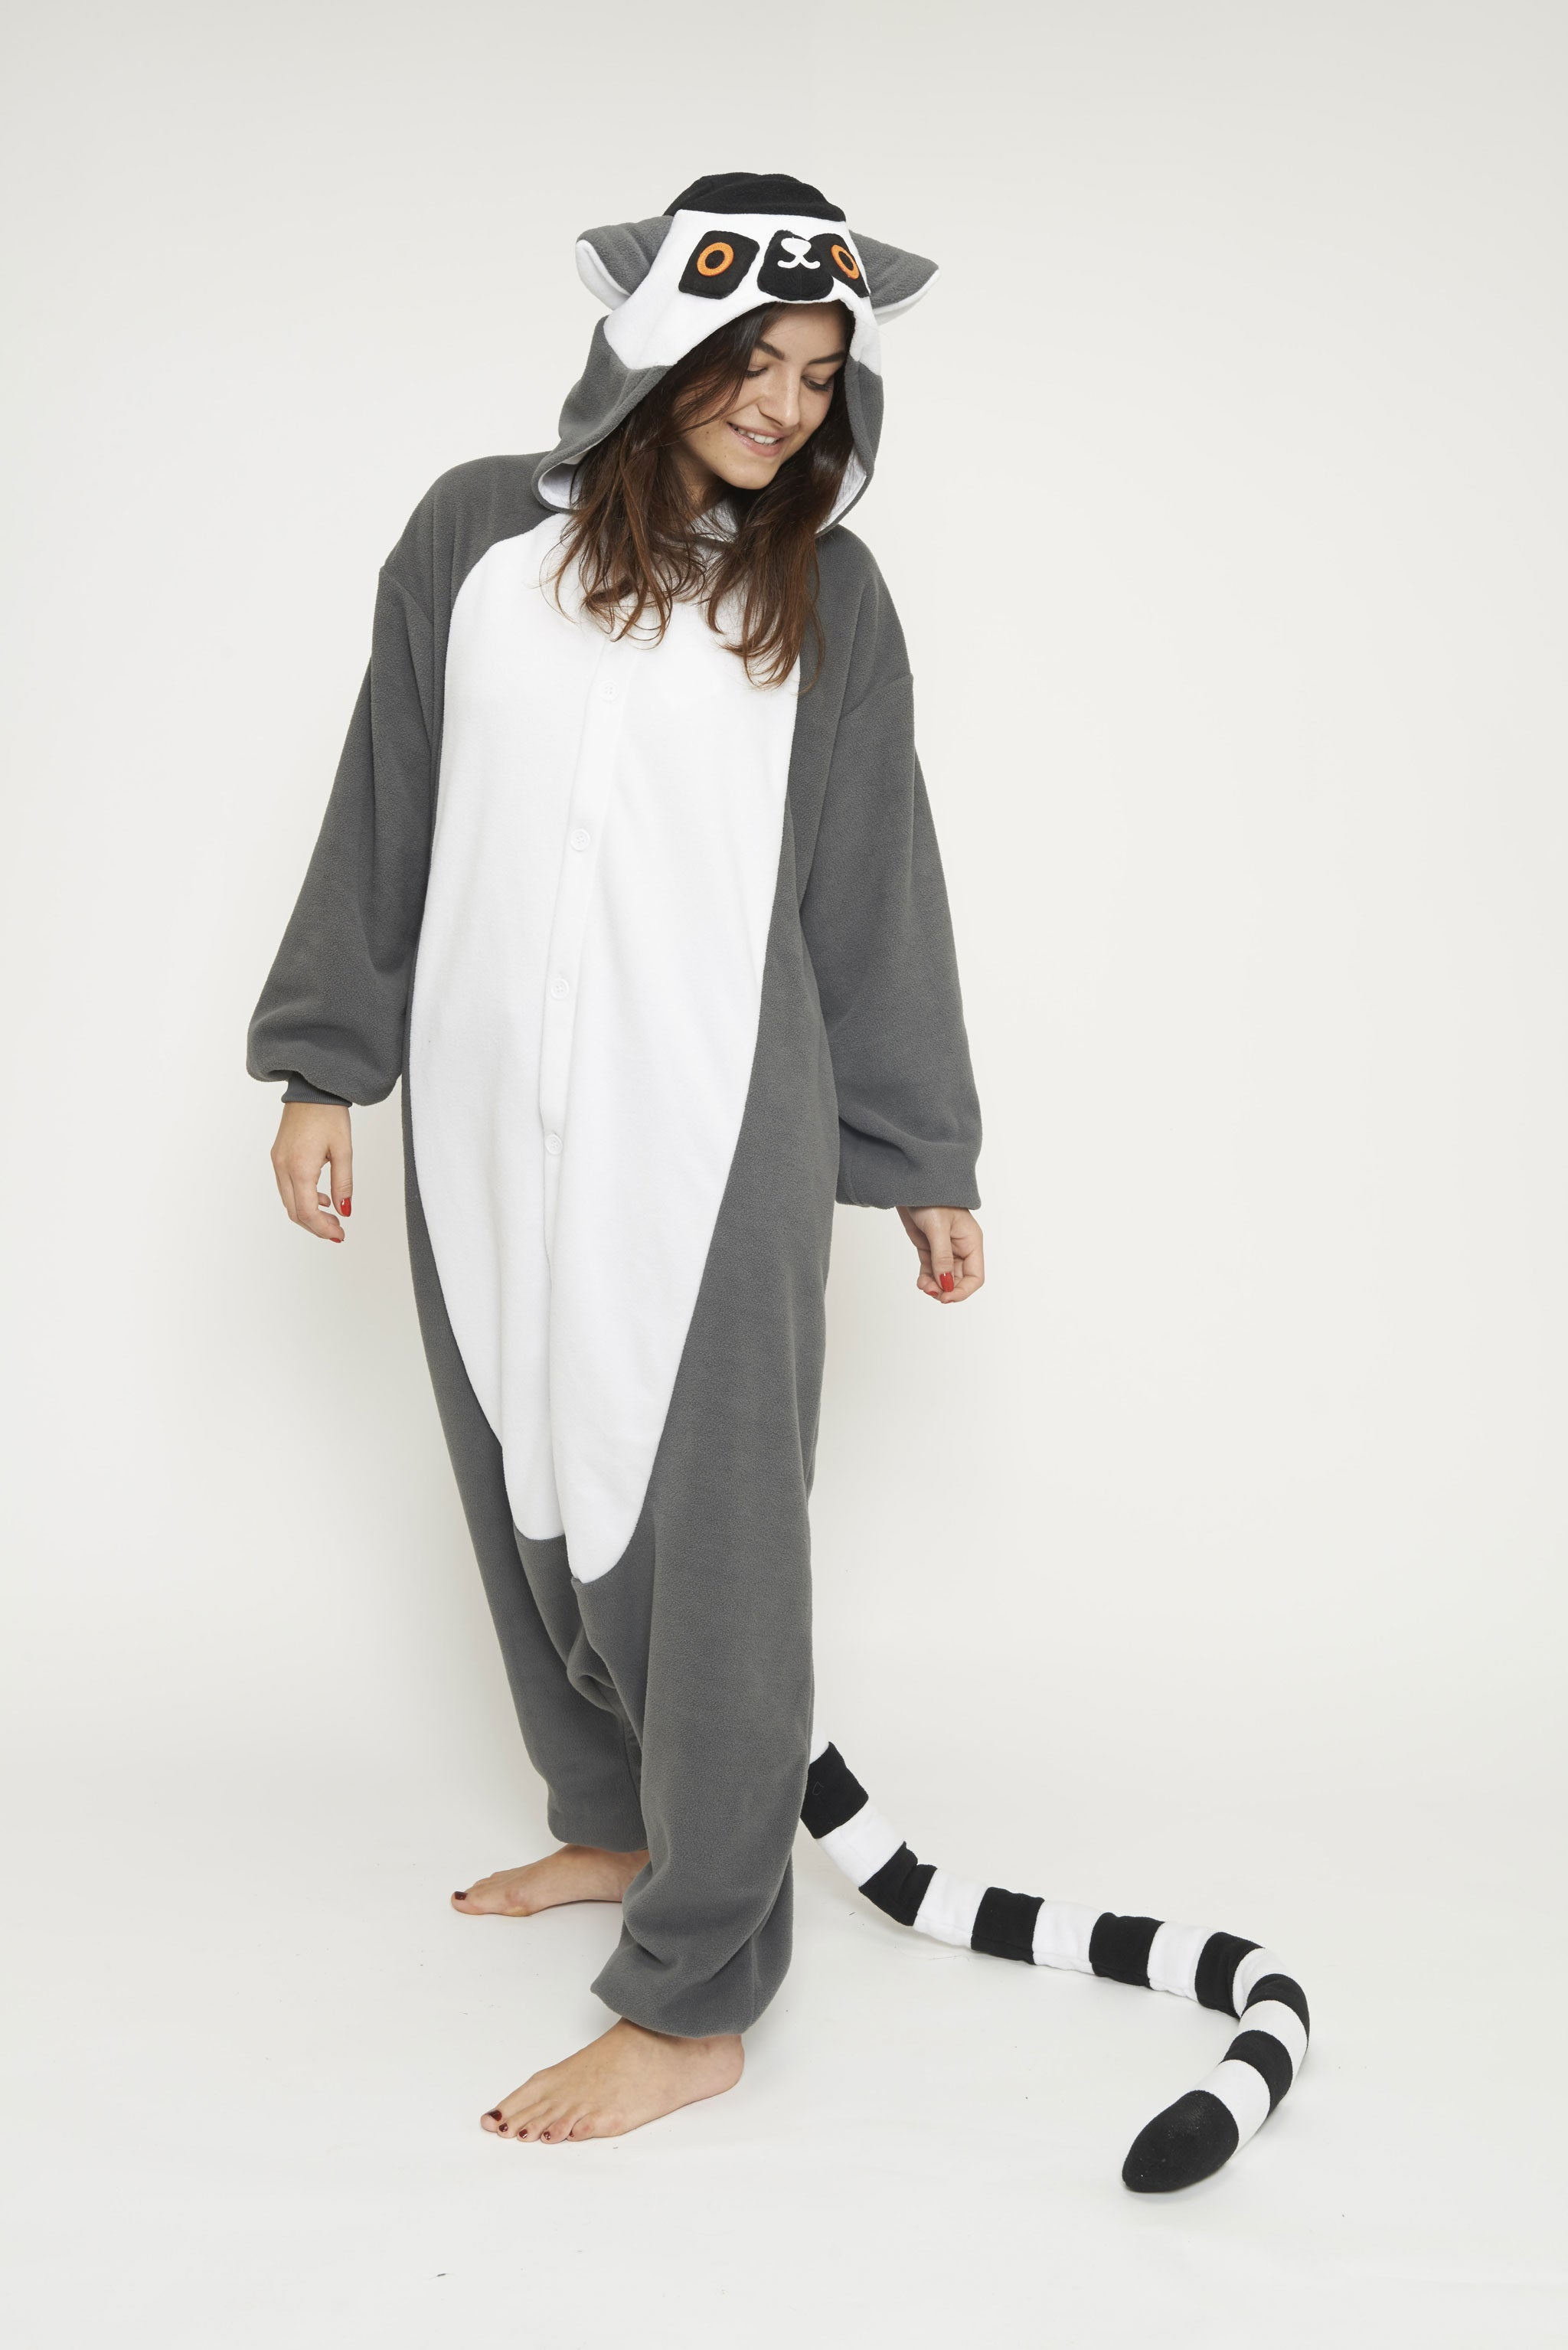 55f0c8d8f63e And relax... nine best onesies for adults